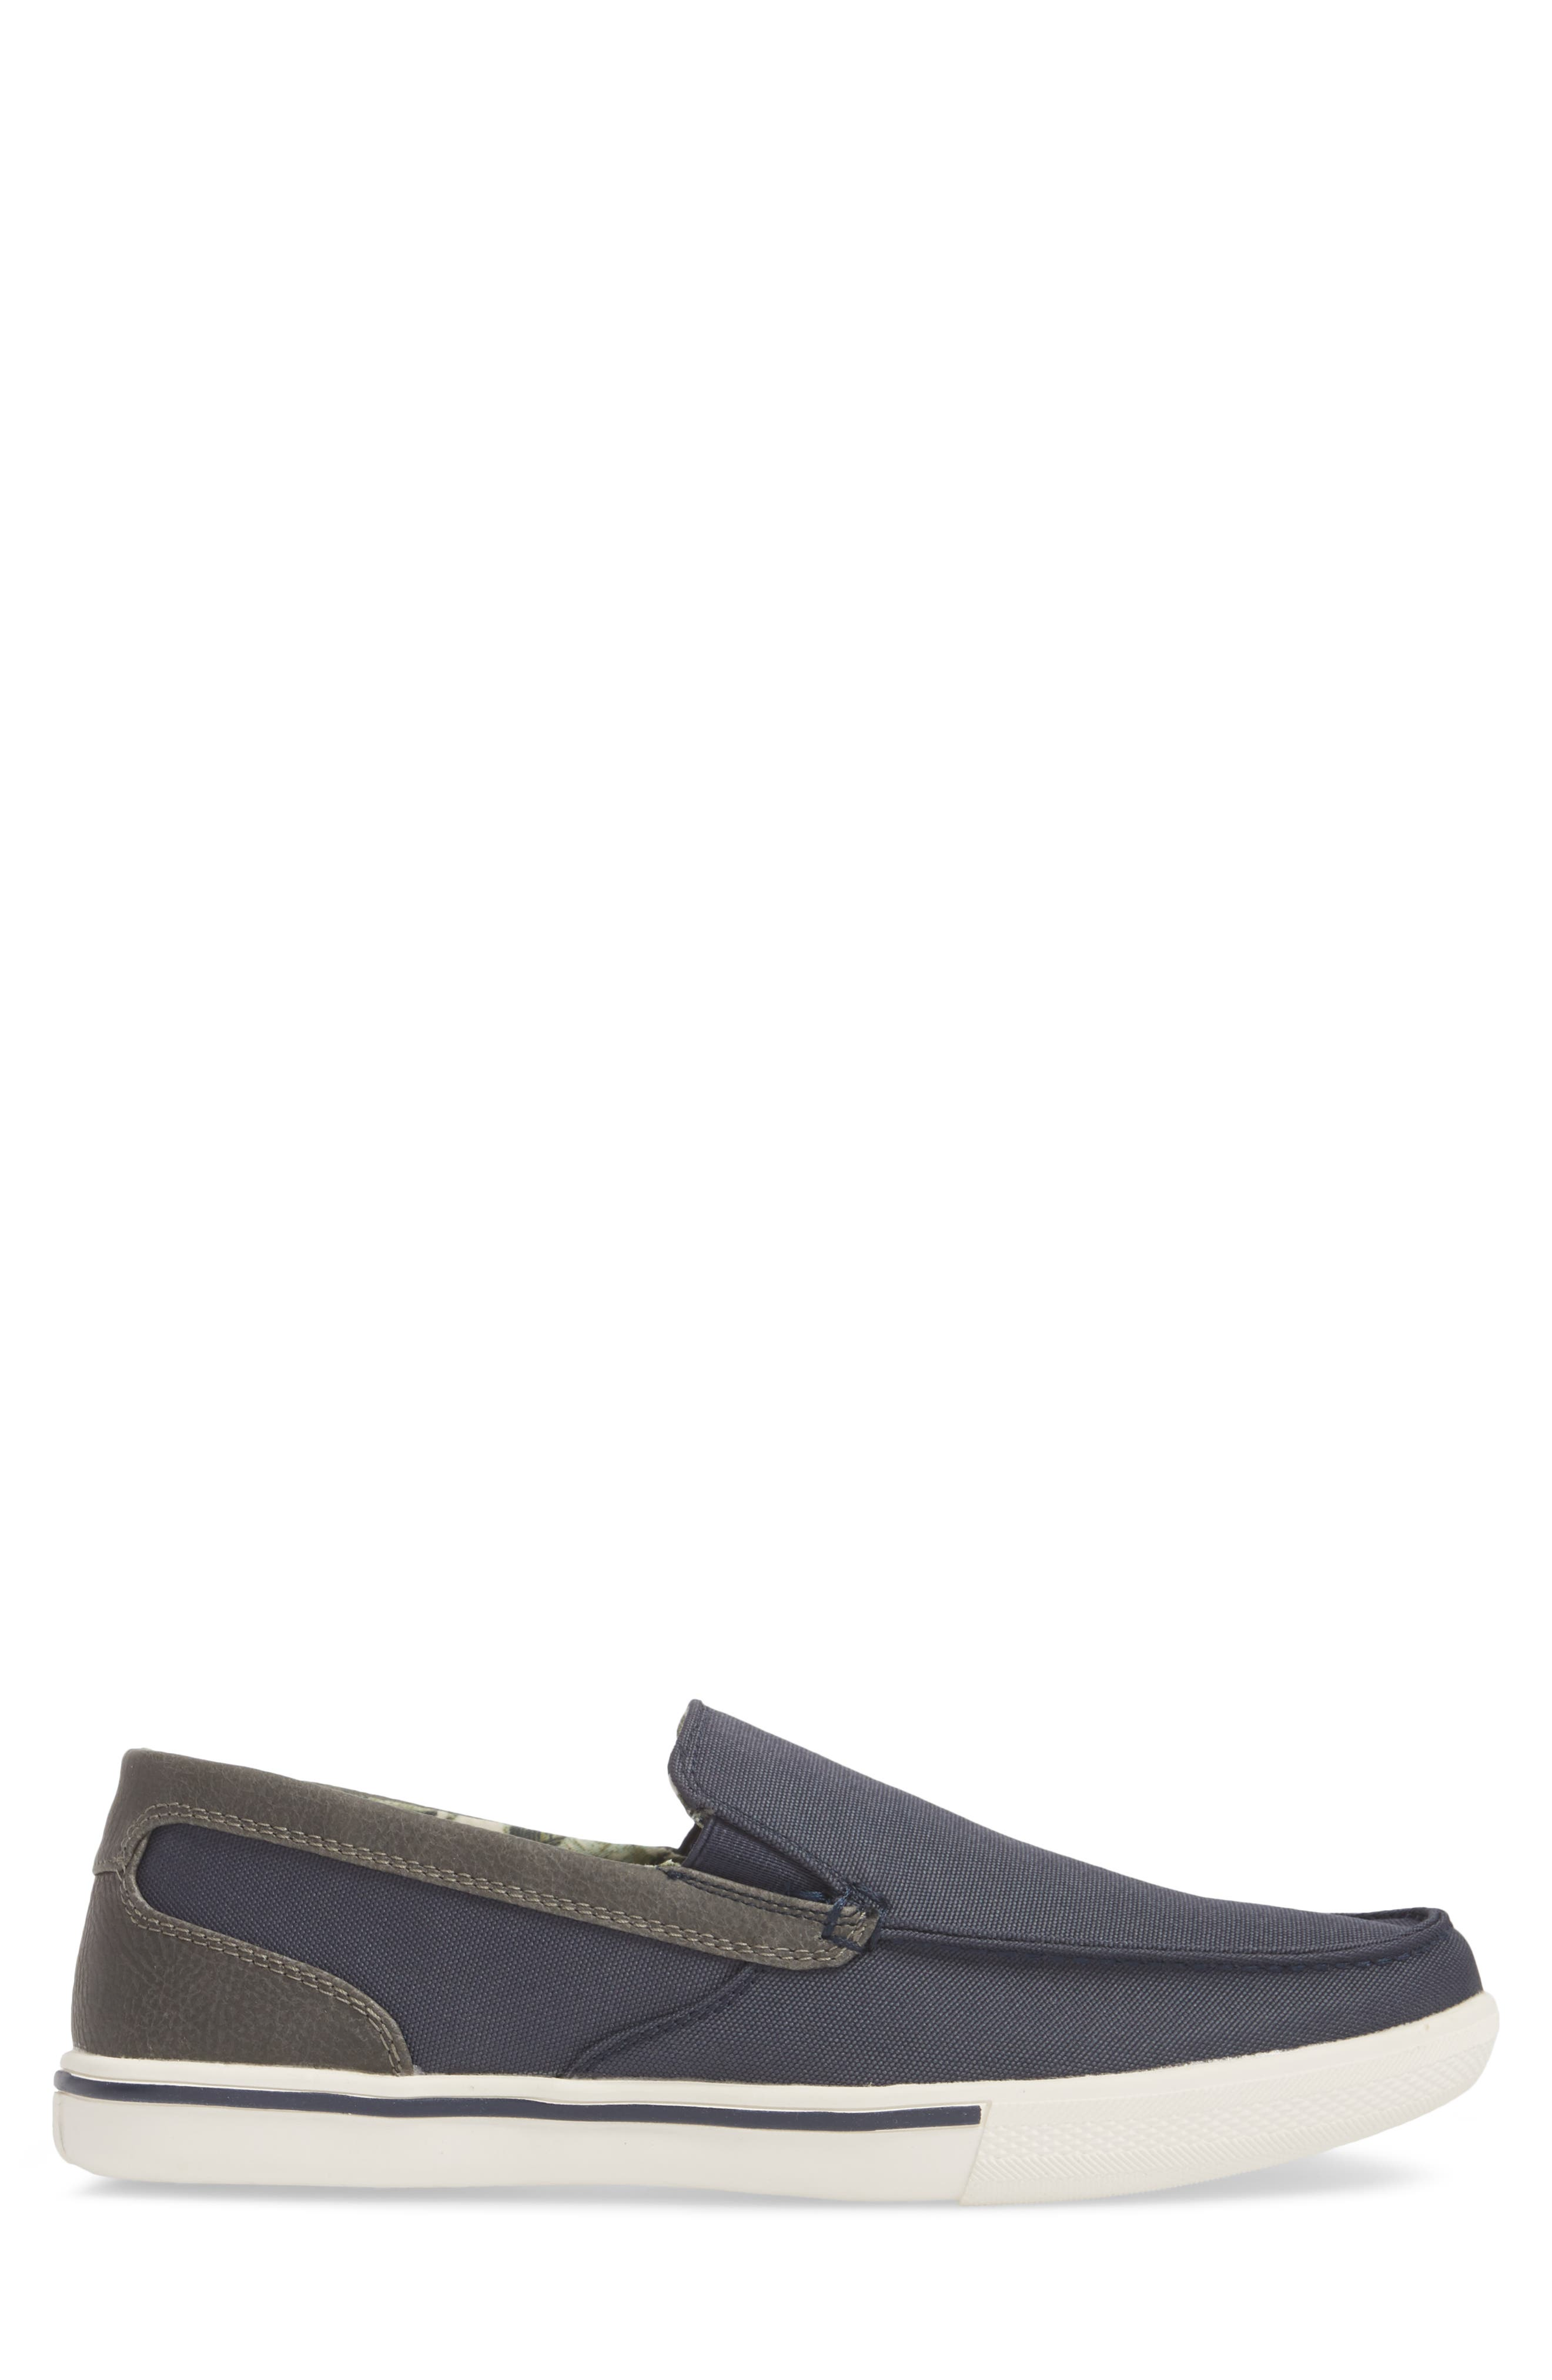 Calderon Loafer,                             Alternate thumbnail 3, color,                             Navy Canvas/ Leather